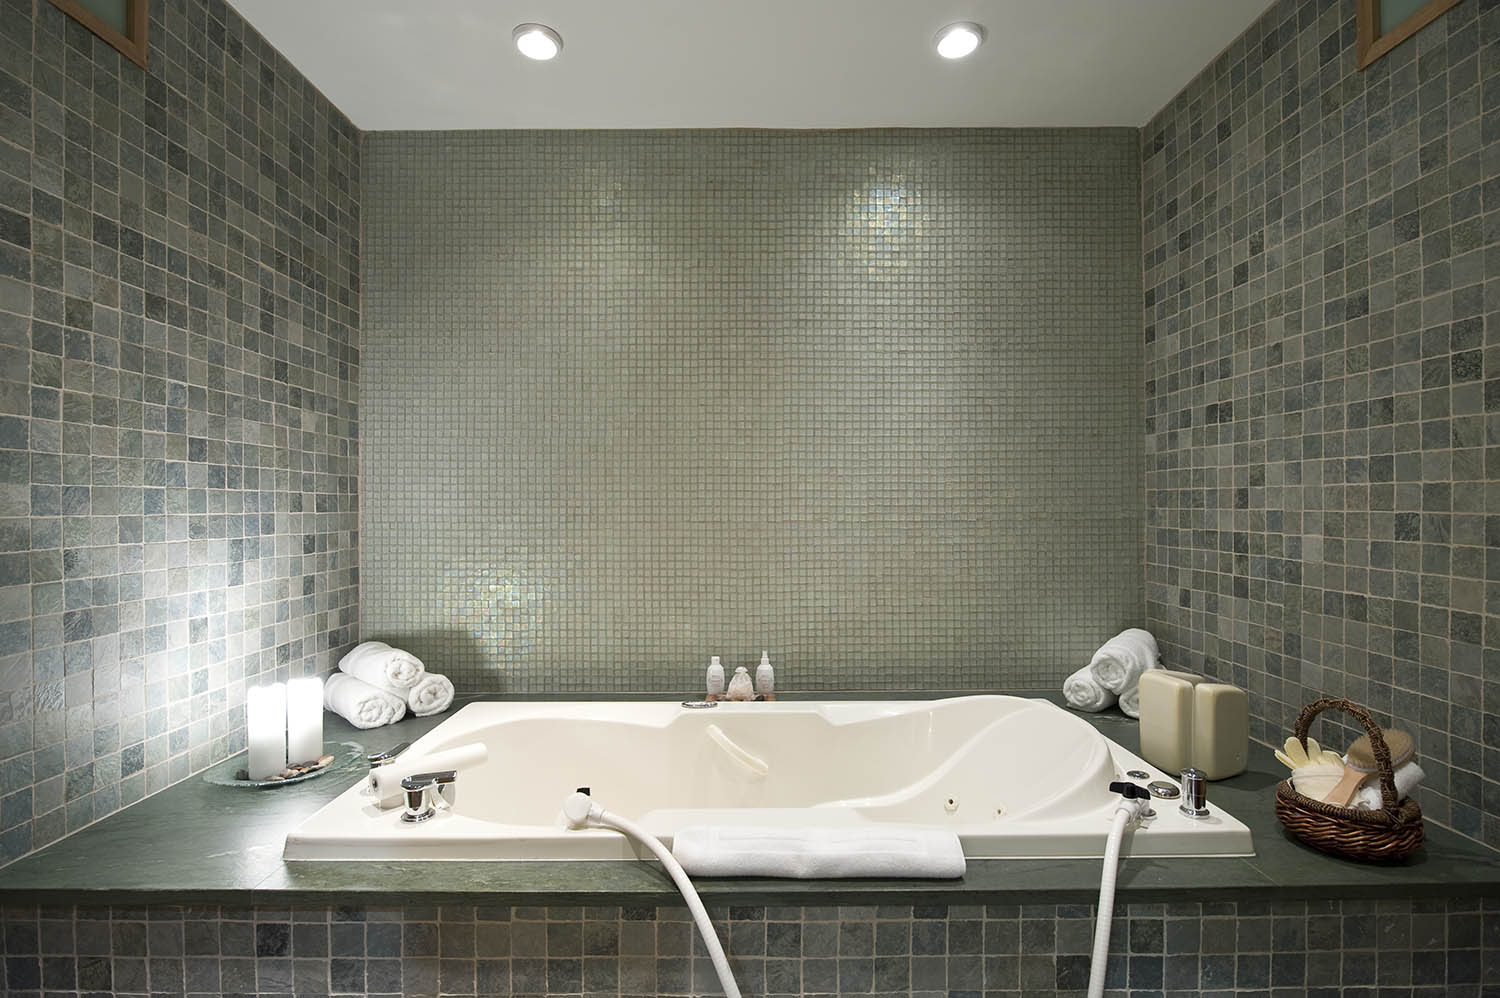 Spa guests can enjoy a hydrotherapy bath with sea salts.